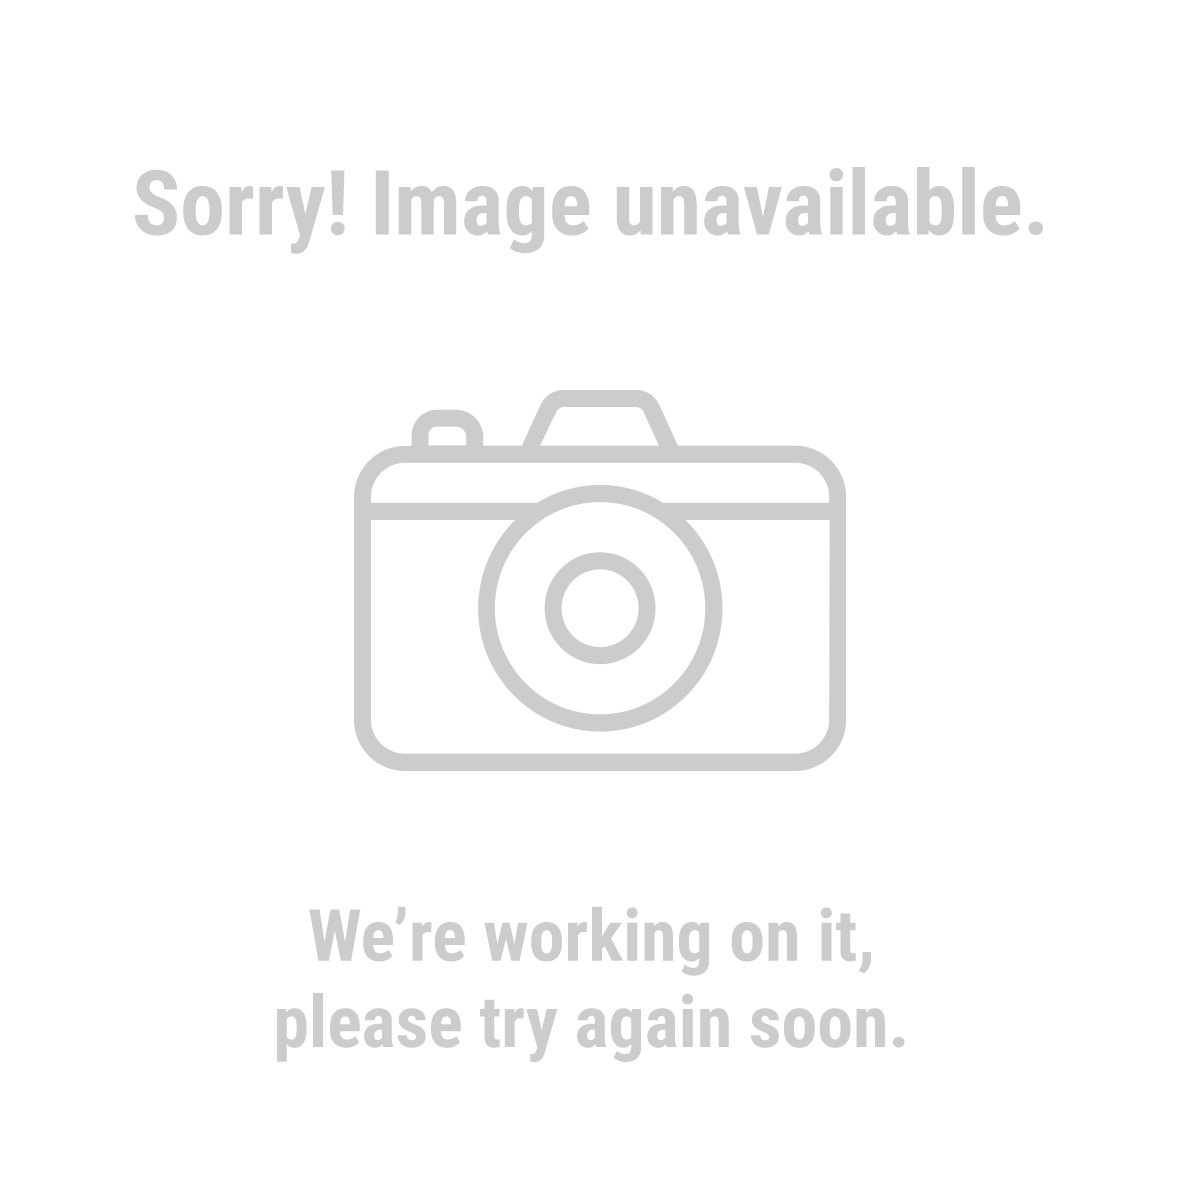 Storehouse® 60264 Assorted Cable Ties 350 Pc